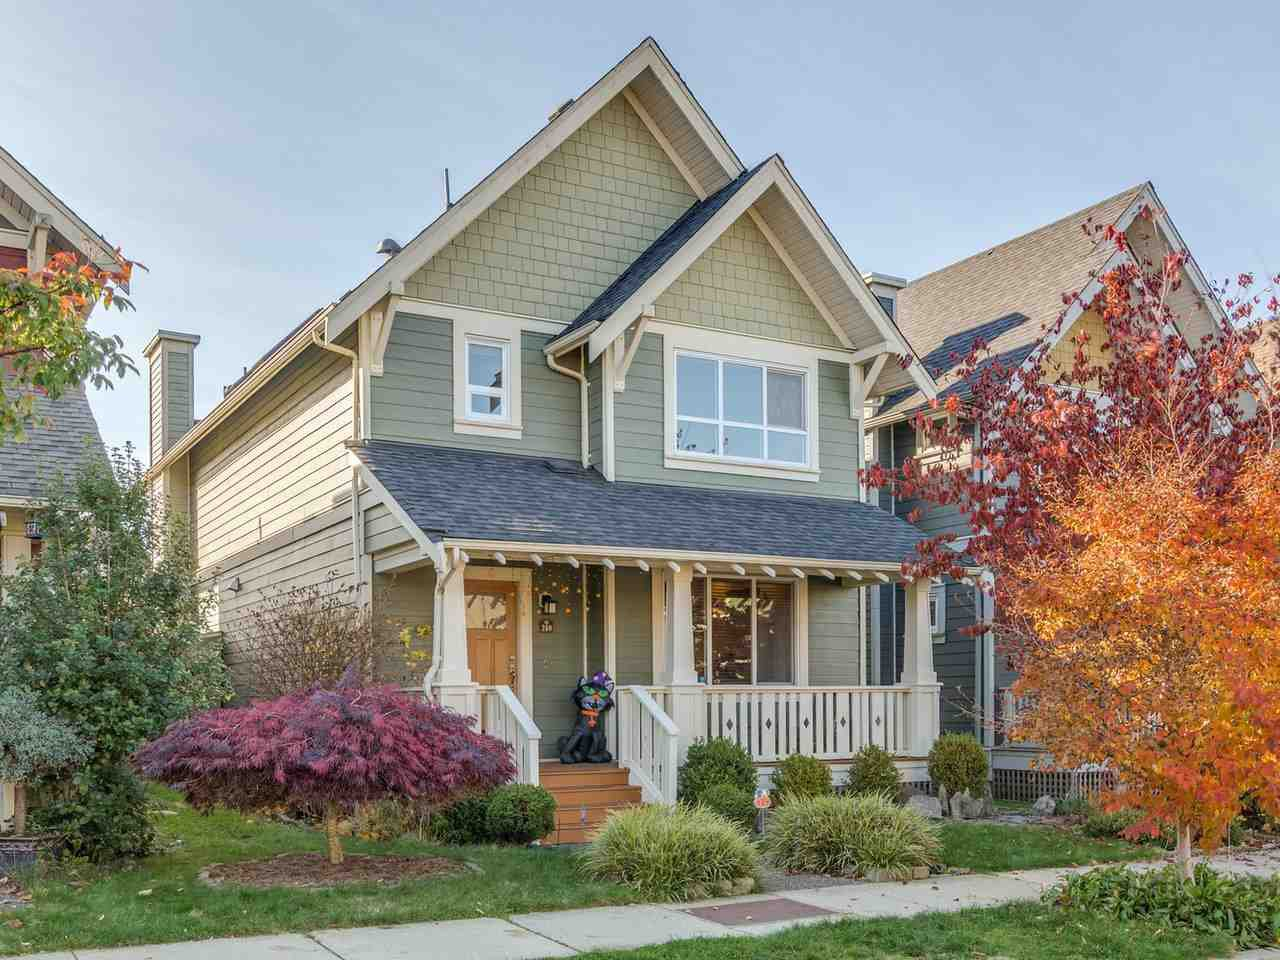 Main Photo: 260 FURNESS Street in New Westminster: Queensborough House for sale : MLS®# R2415514